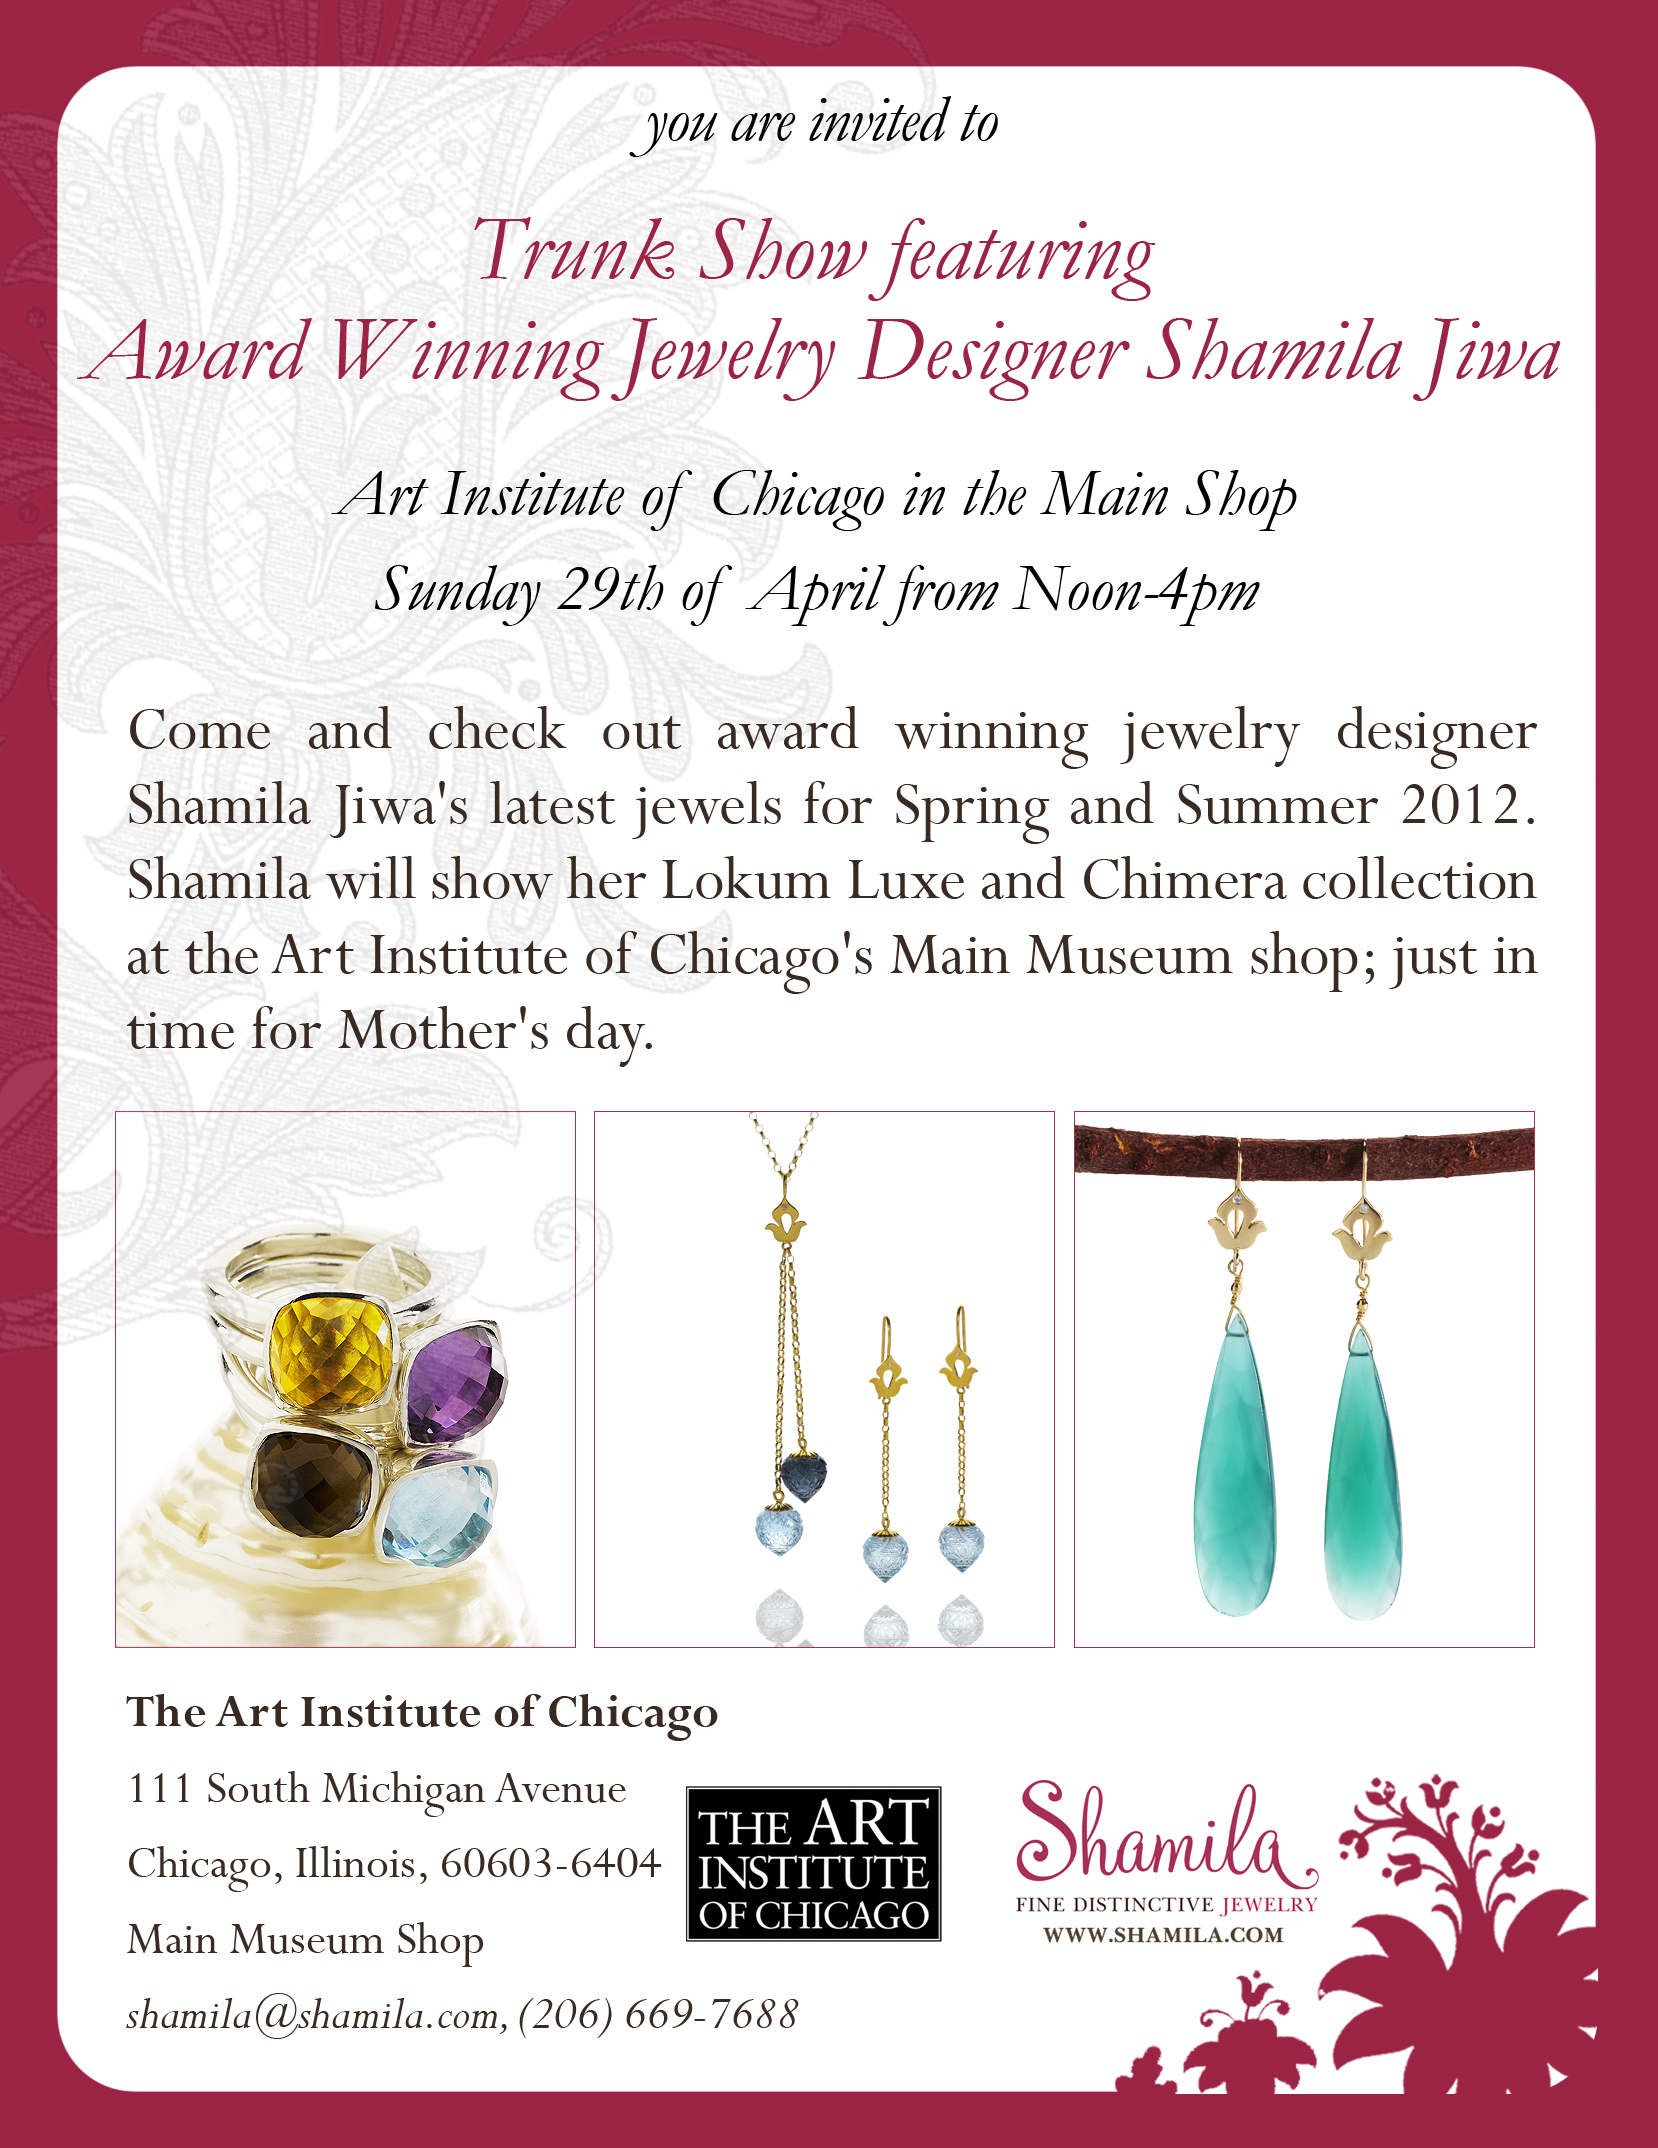 Shamila ~ Fine Jewelry Trunk Show at the Art Institute of Chicago, April 29 2011